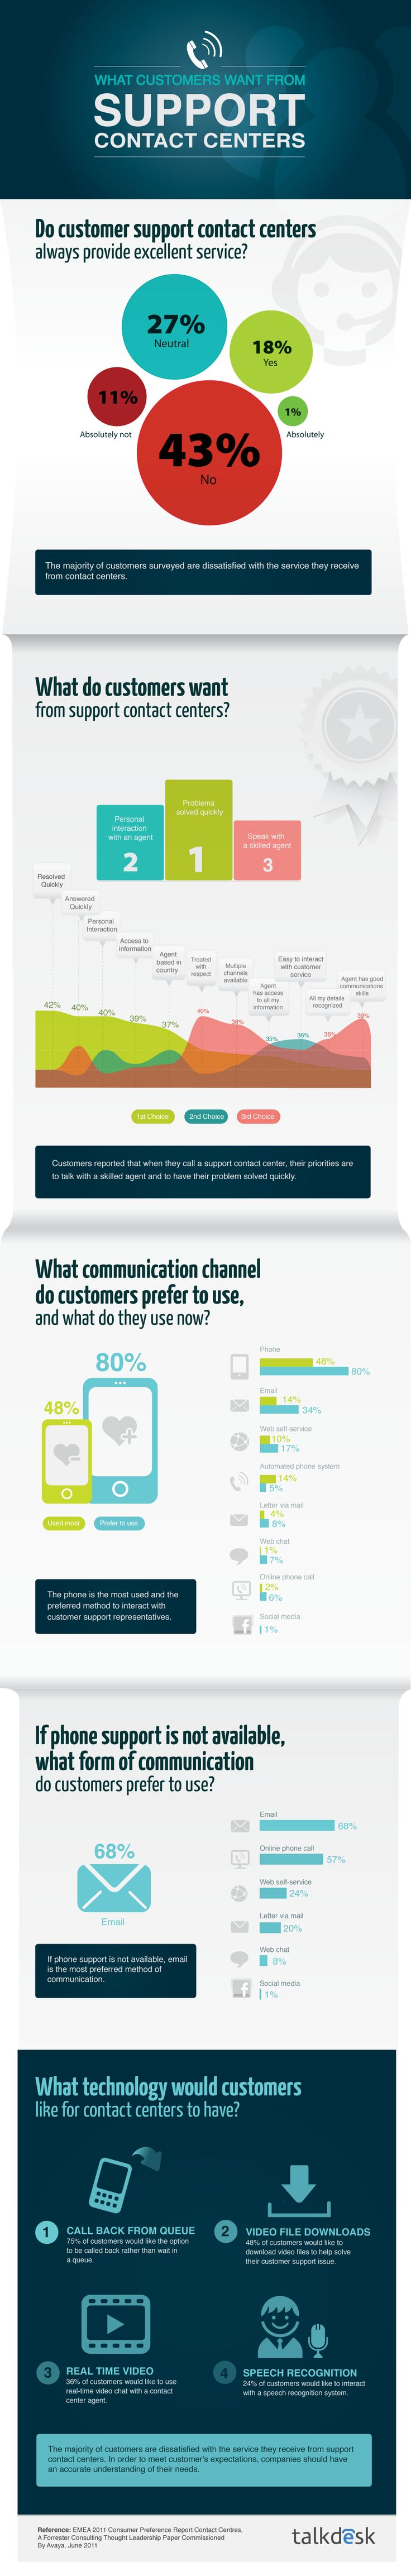 What Customers Want from Support Contact Centers